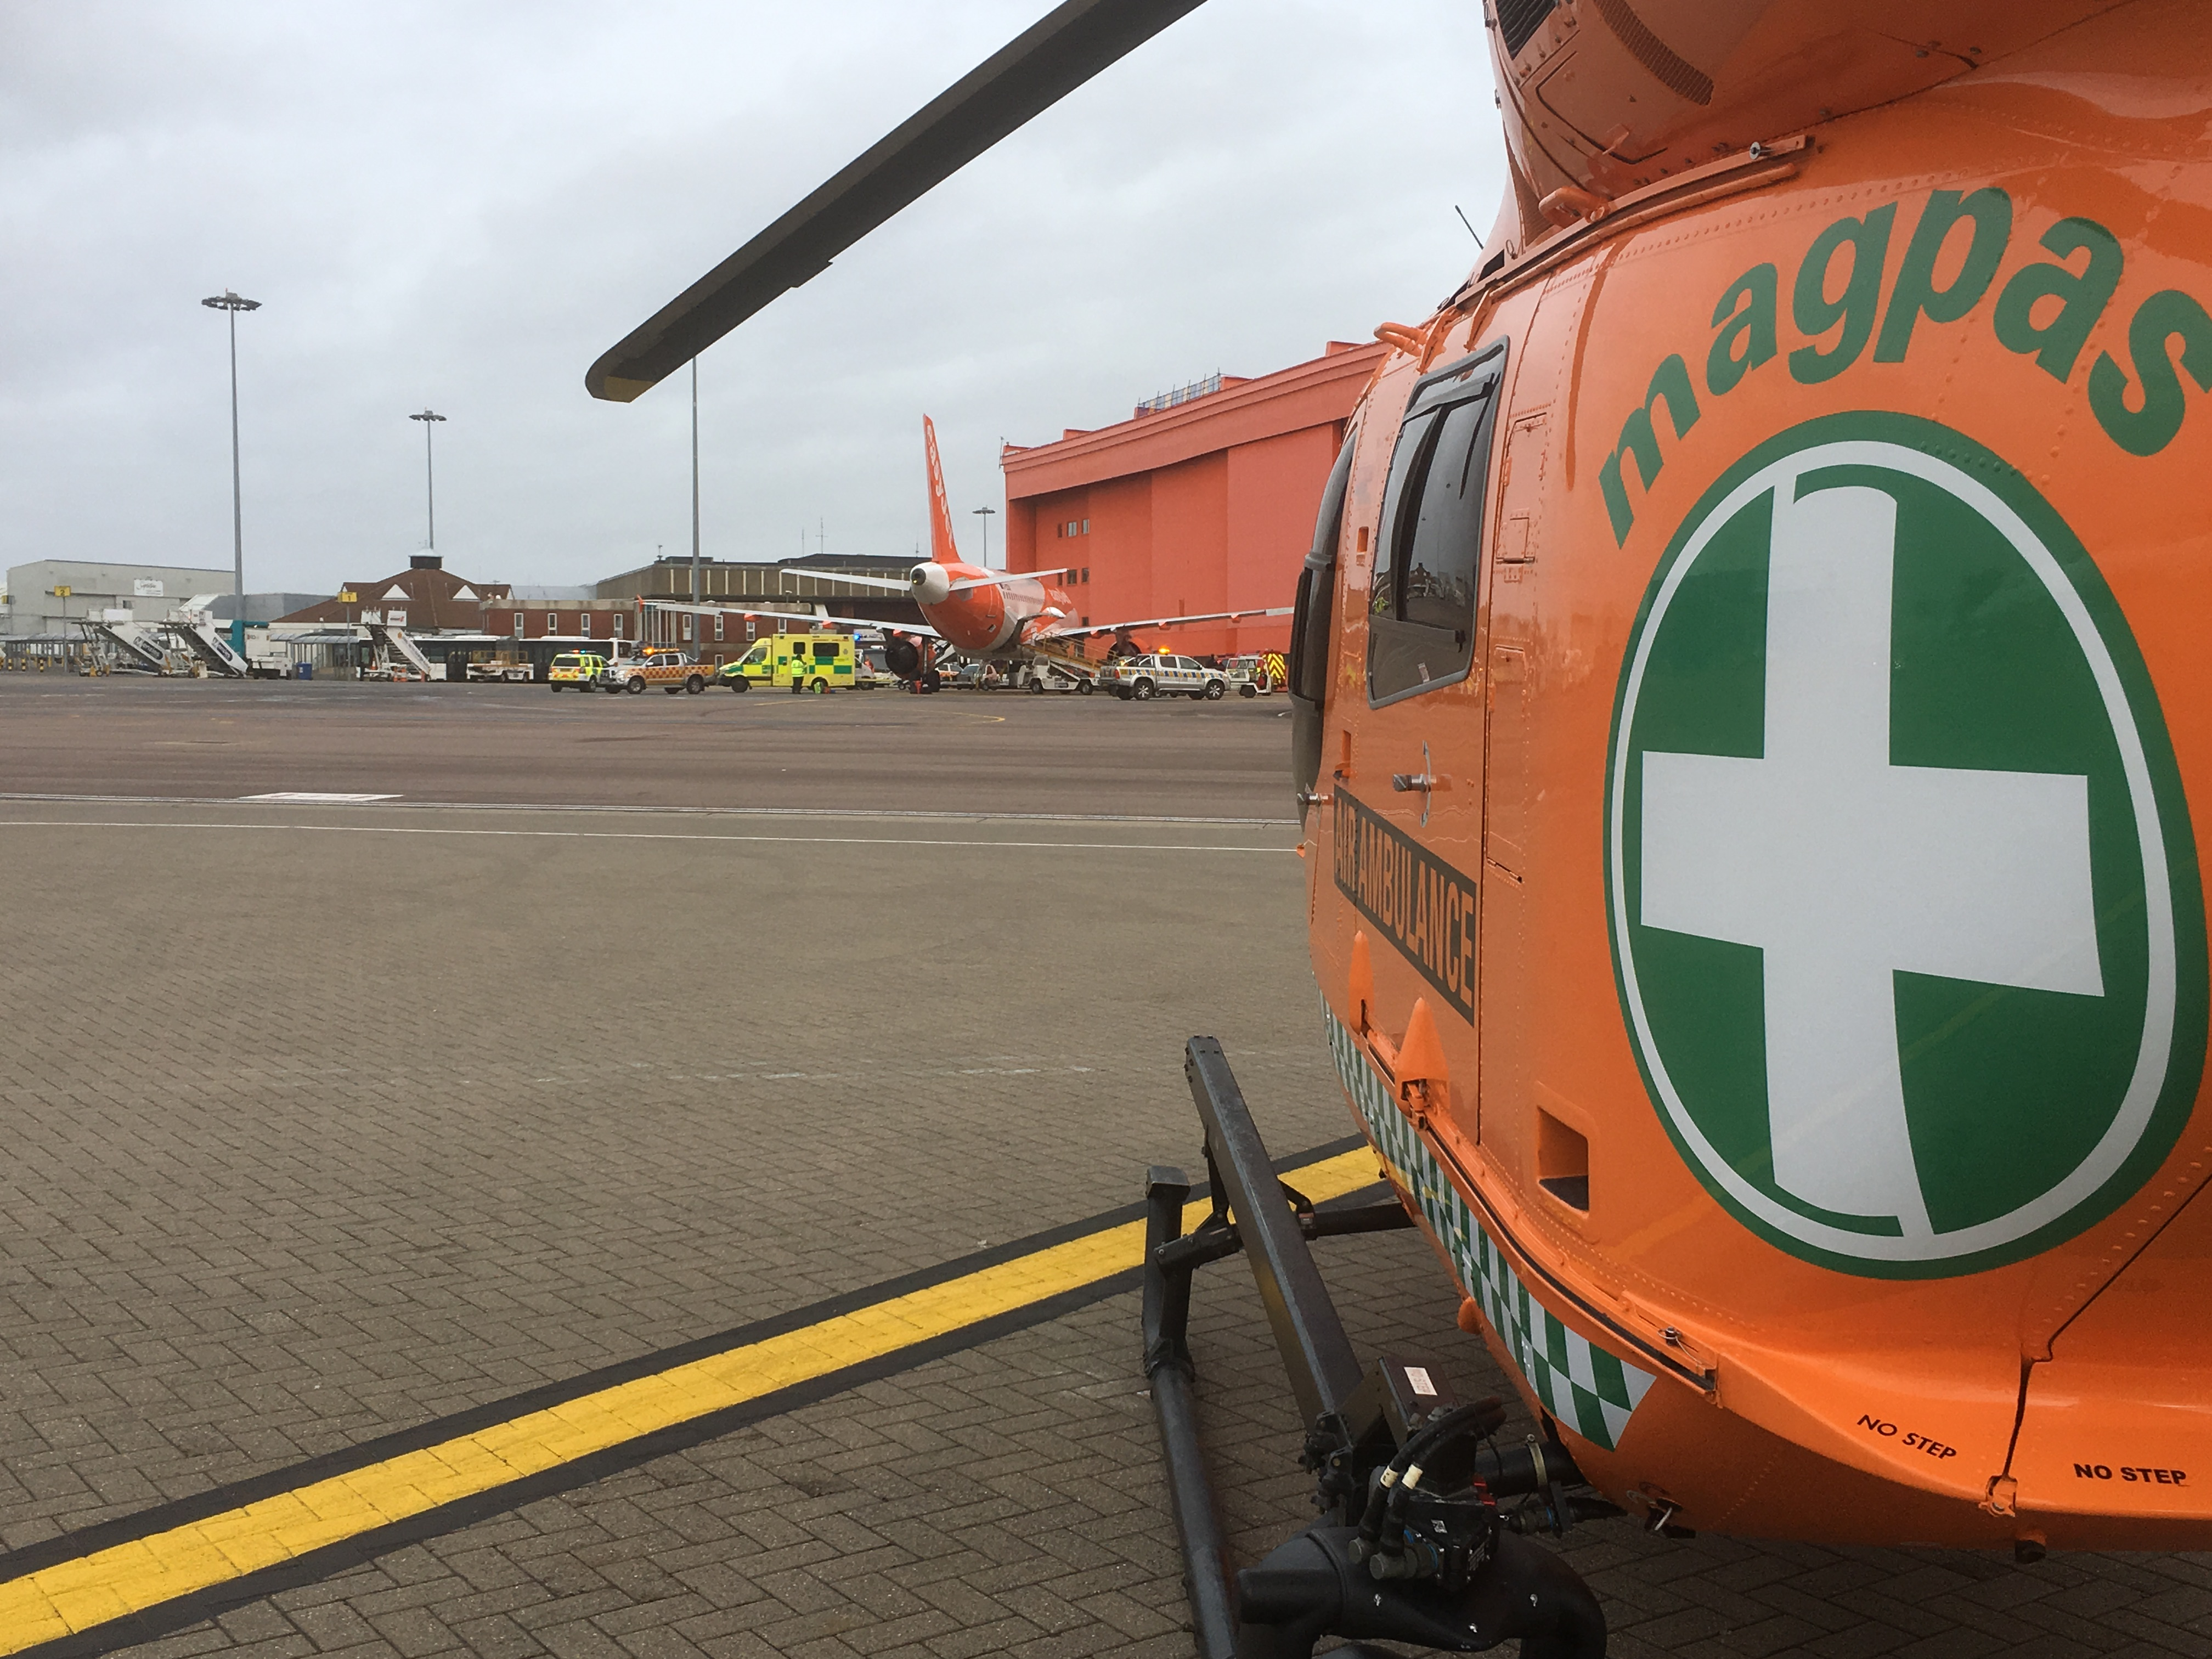 Luton-airport-incident-scene-2-on-24th-December---image-courtesy-of-Magpas-Air-Ambulance.jpg